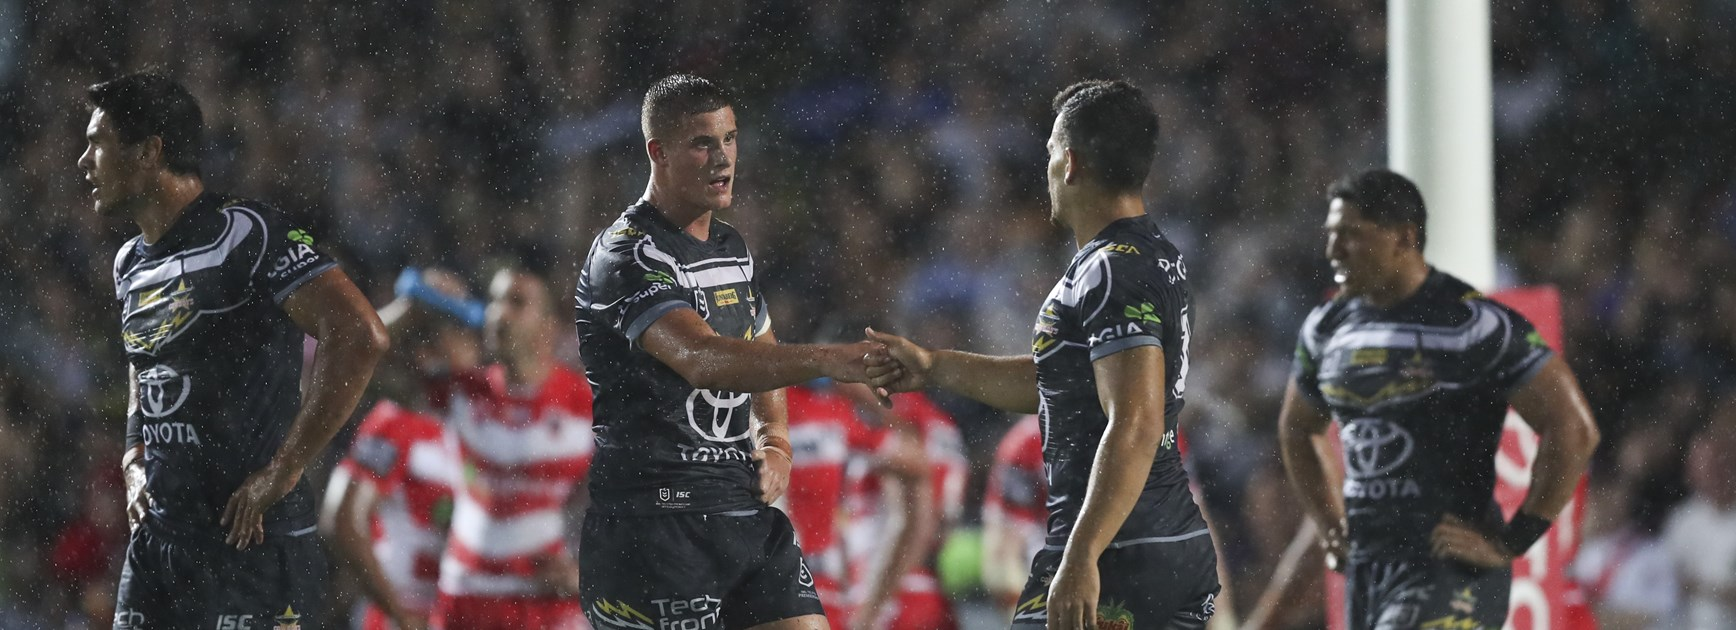 Five things you need to know - Round 15 v Dragons